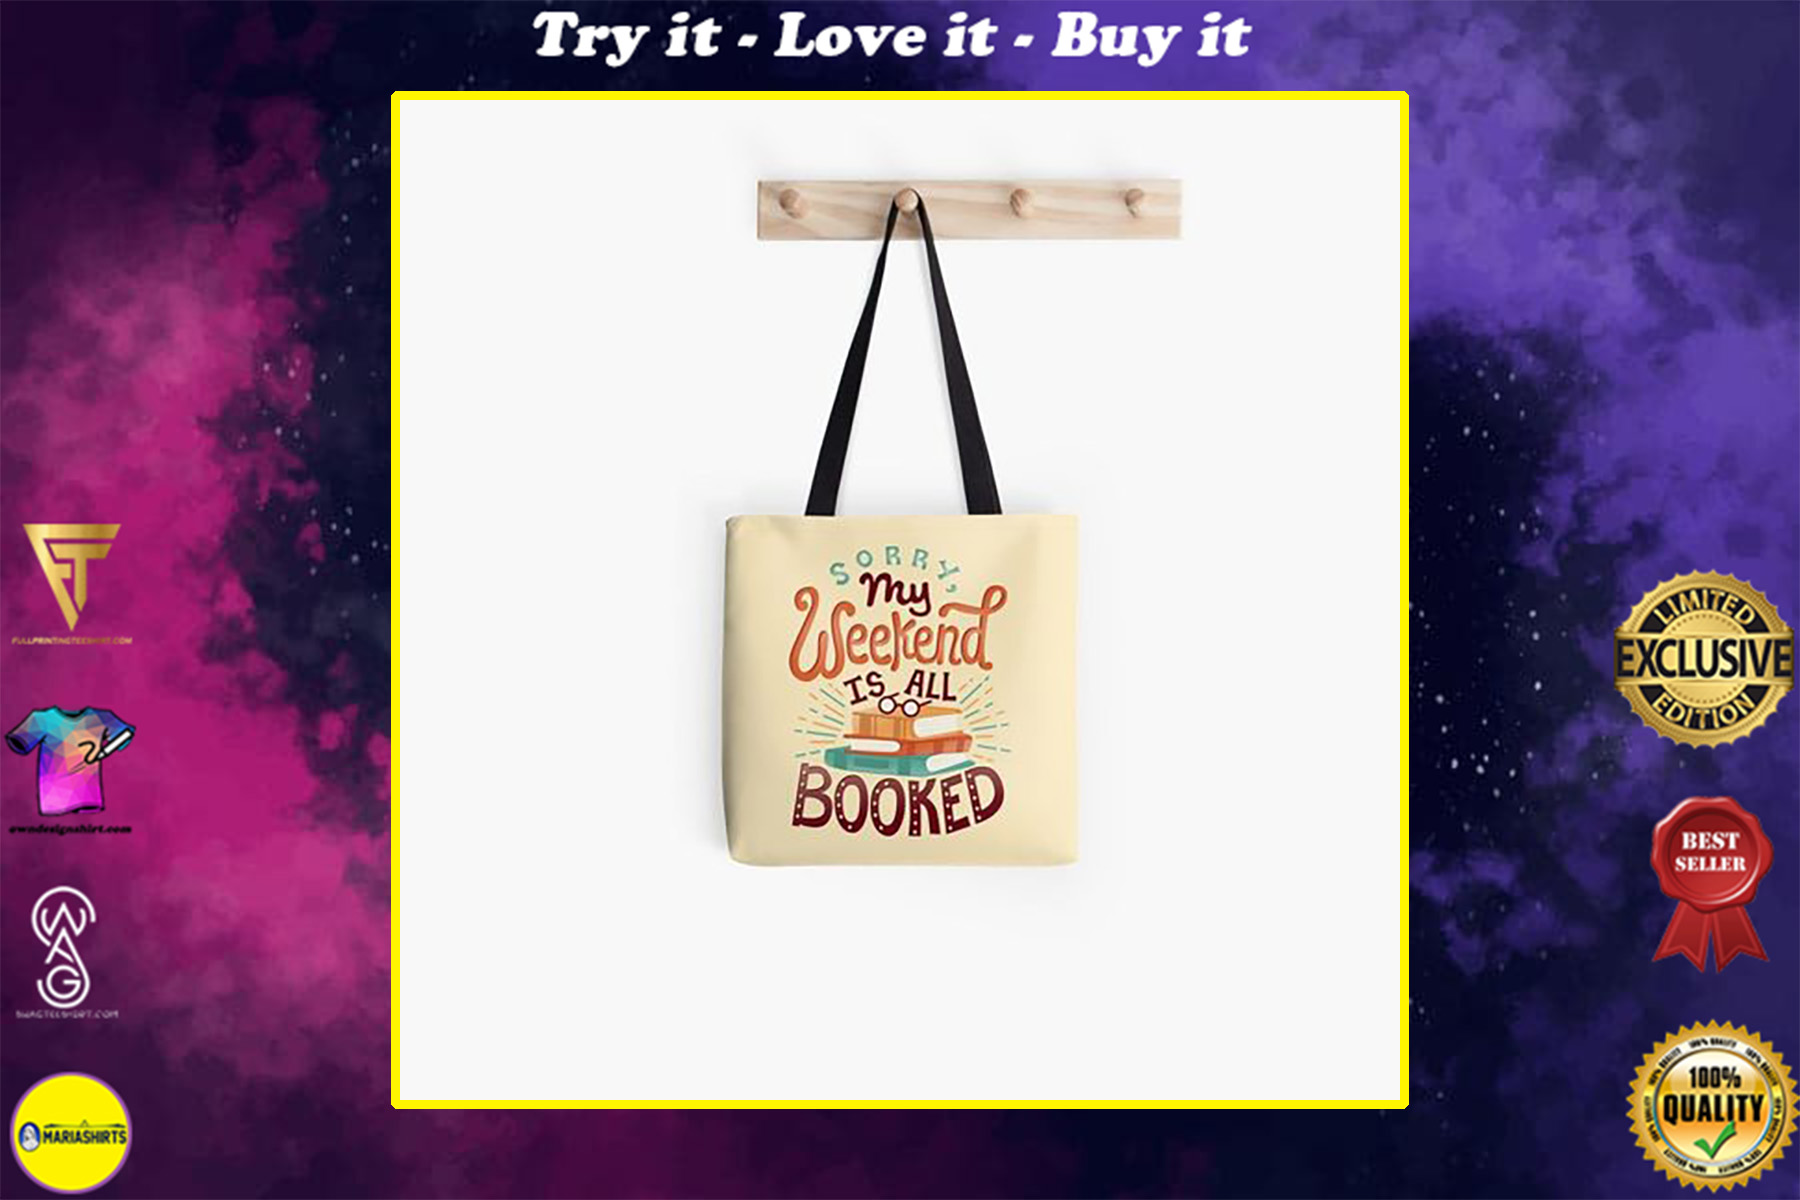 book lovers reading sorry my weekend is all booked all over printed tote bag